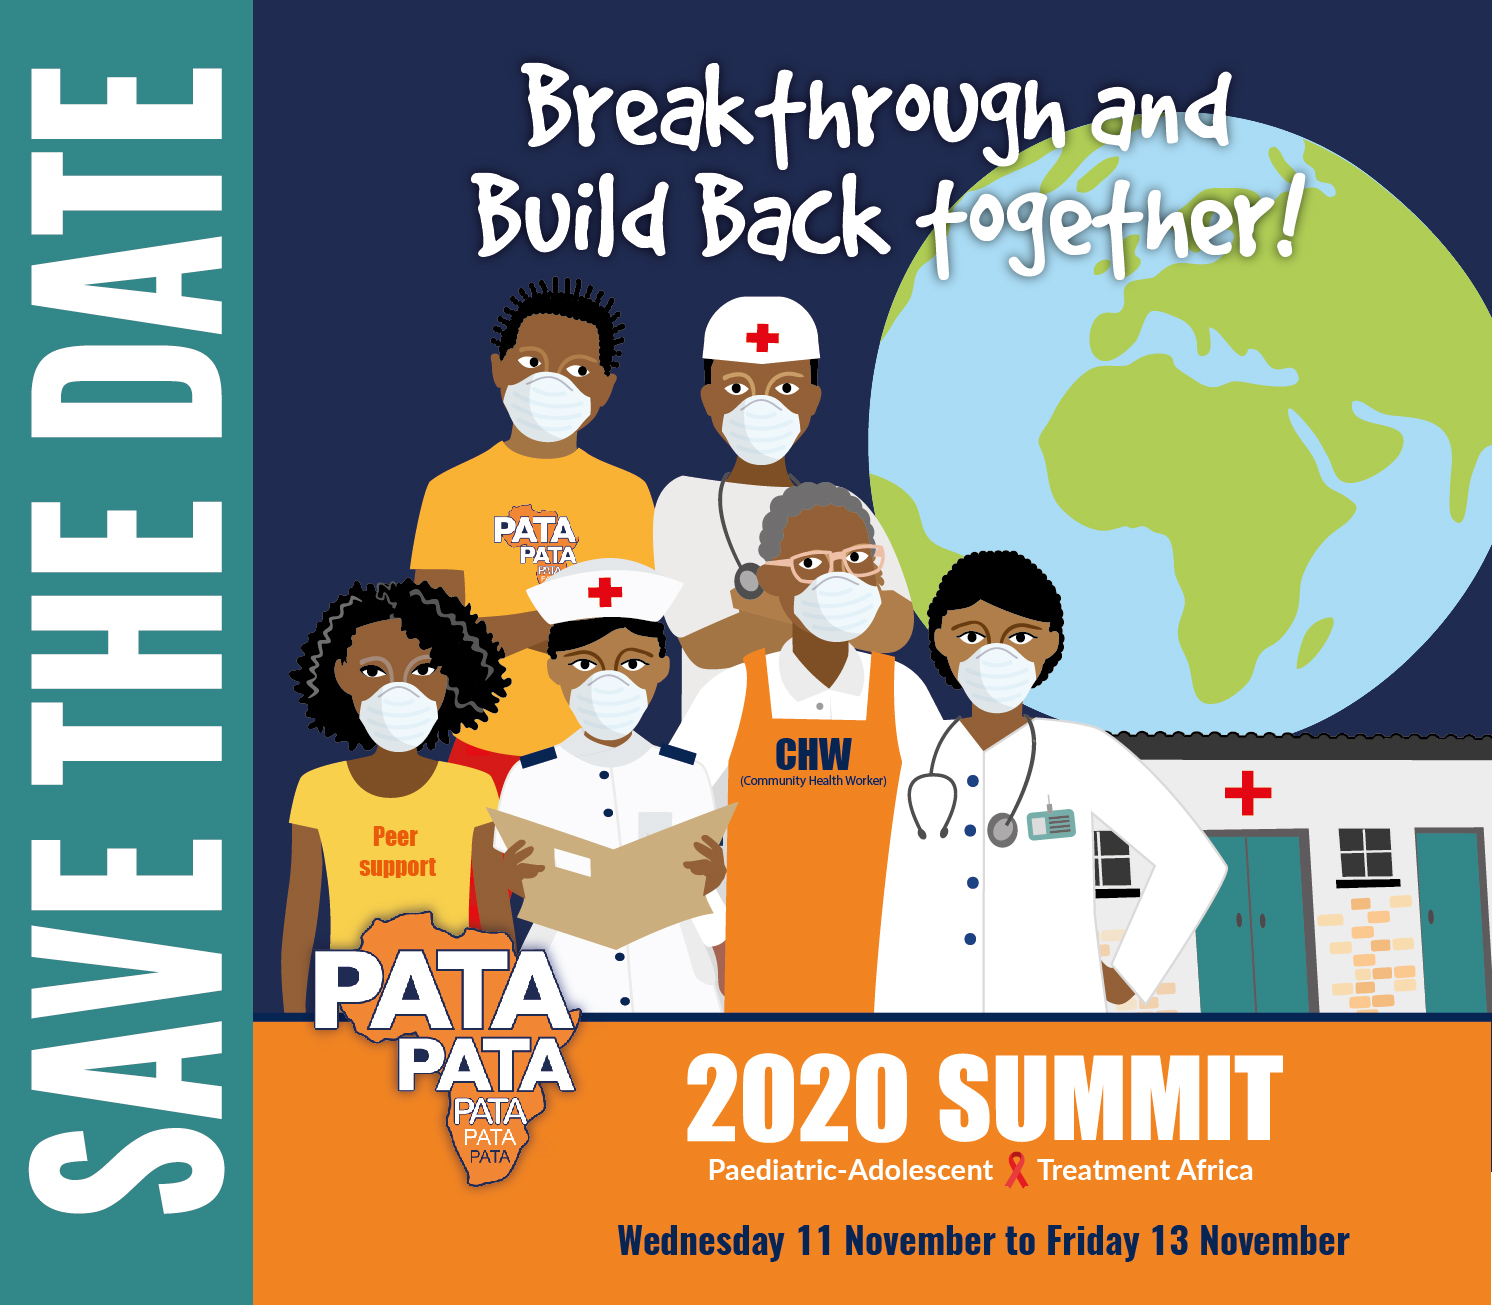 Announcing the 2020 PATA Summit